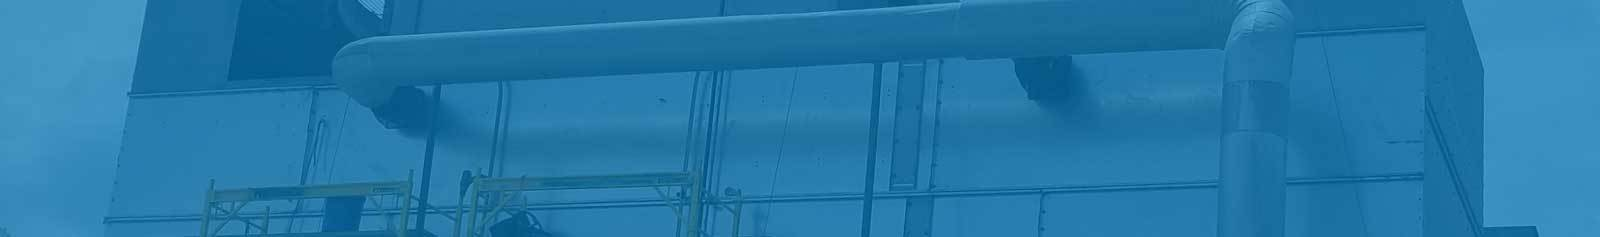 Aftermarket Cooling Tower Casing Wall Panels | Cyrco, Inc.